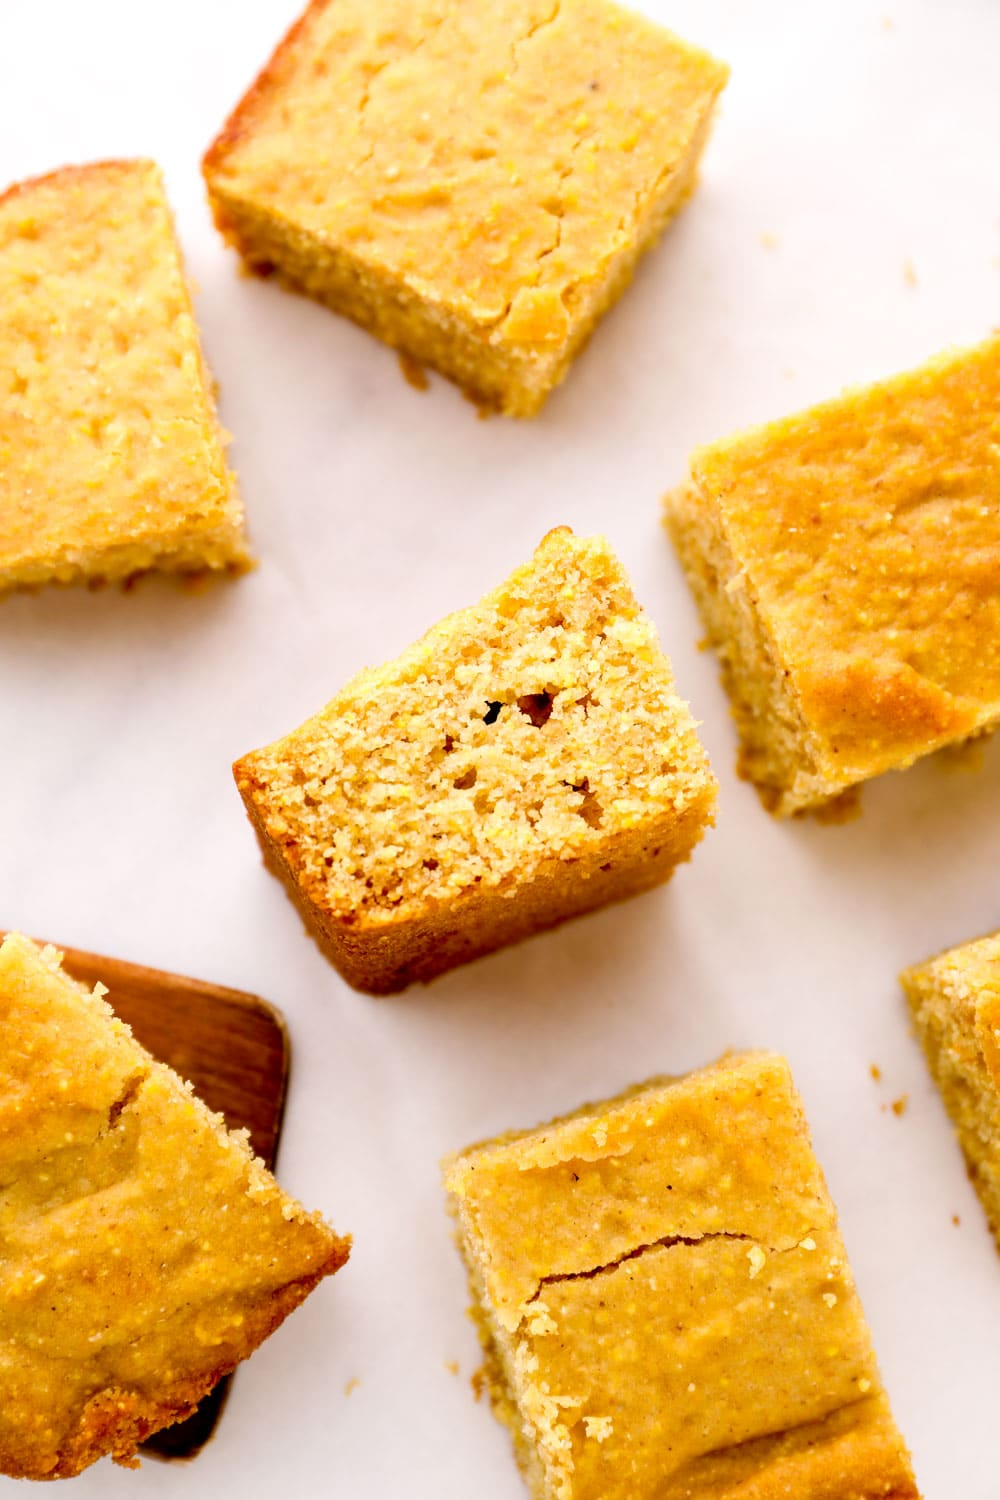 A sliced piece of Gluten Free Cornbread on its side so the crumb is visable.